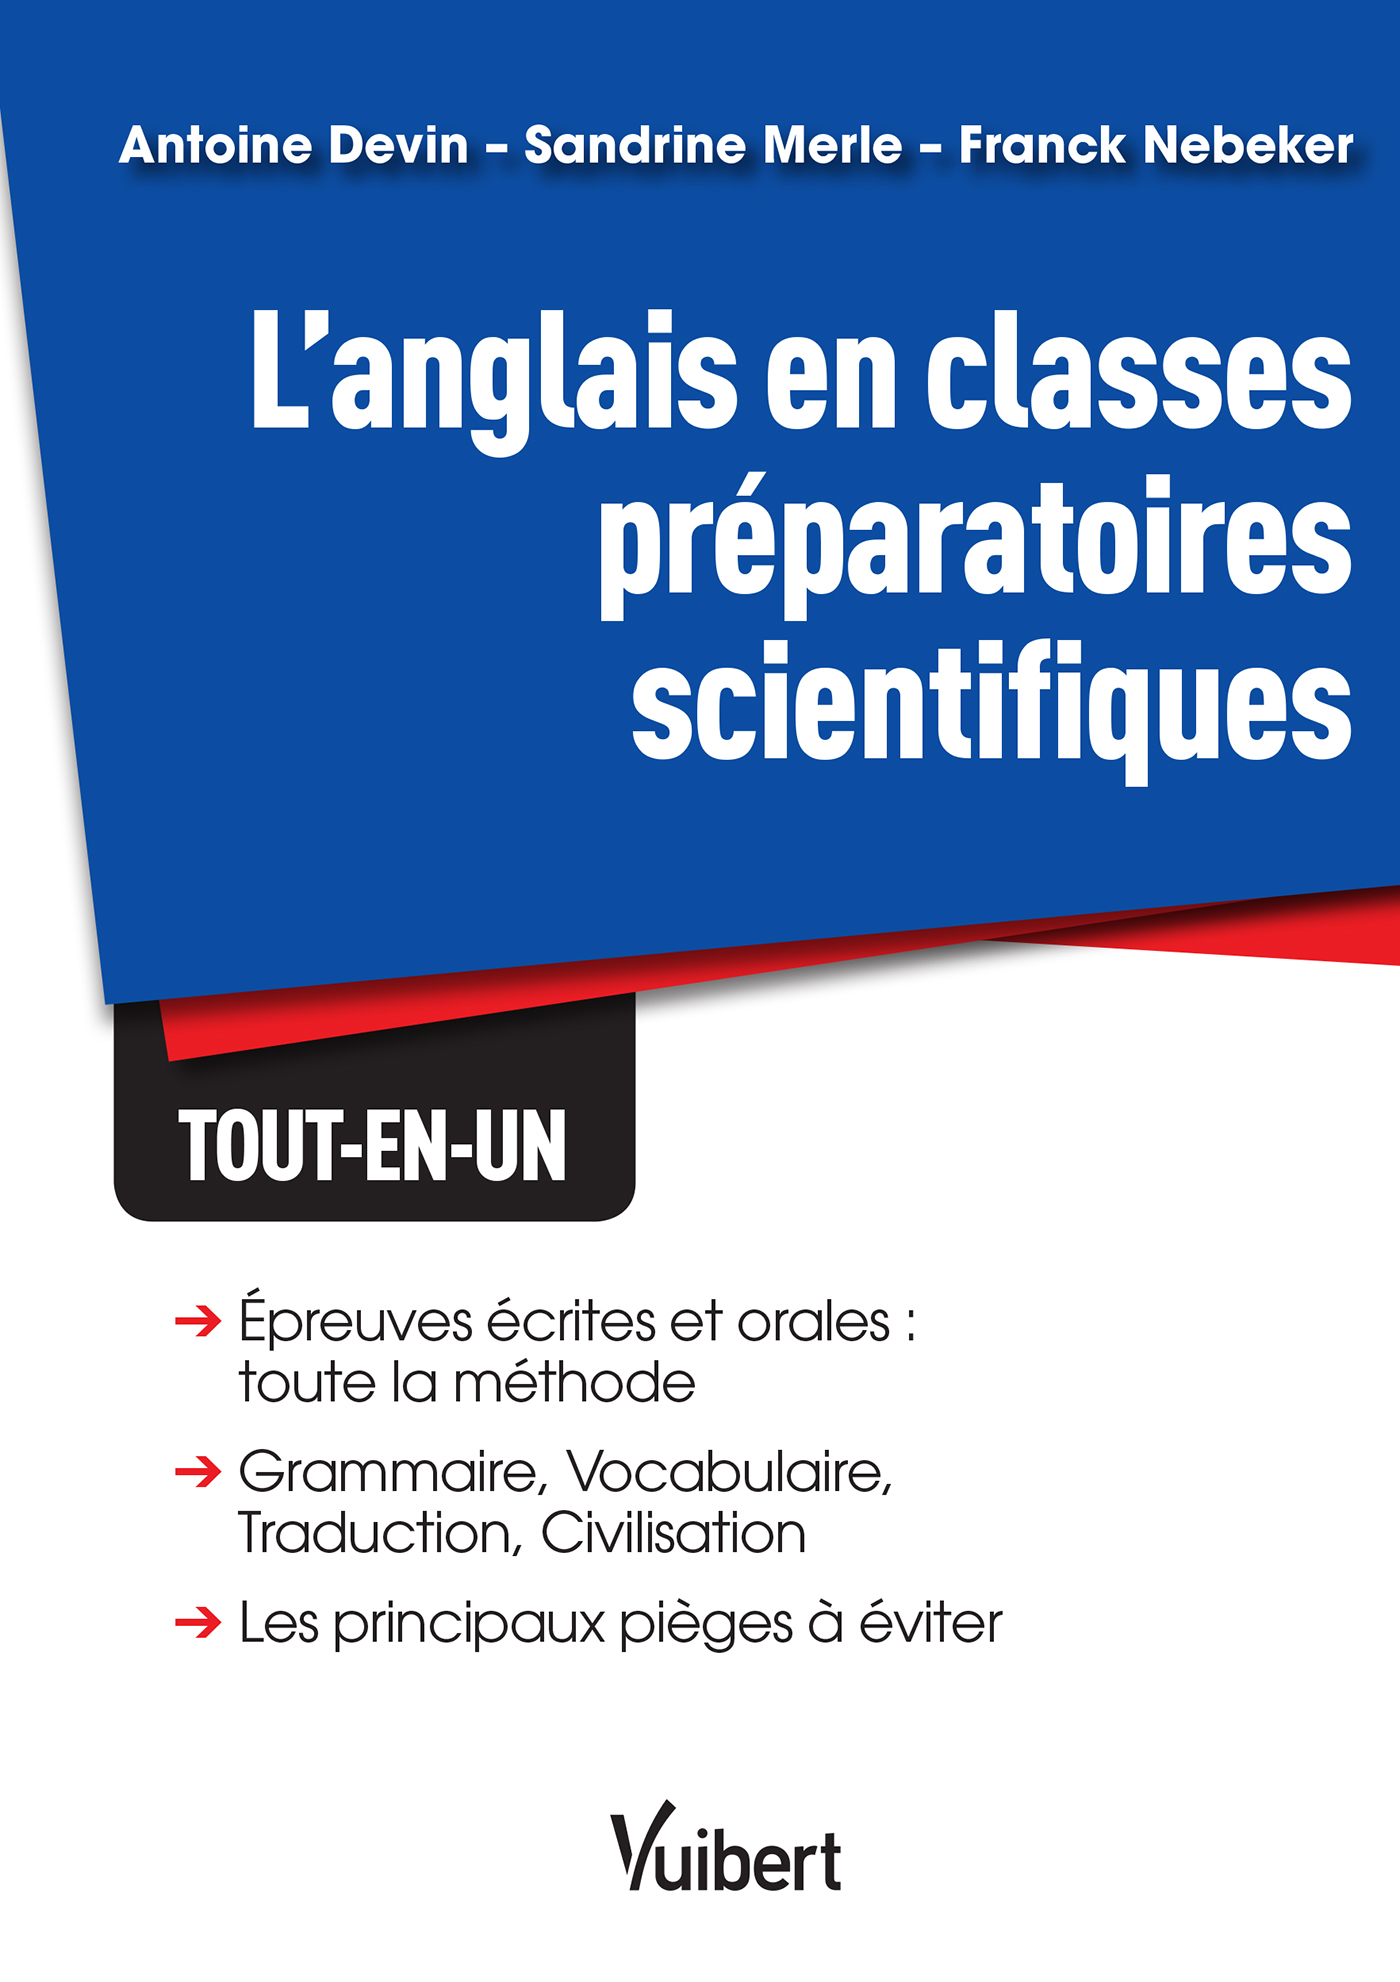 l u0026 39 anglais en classes pr u00e9paratoires scientifiques